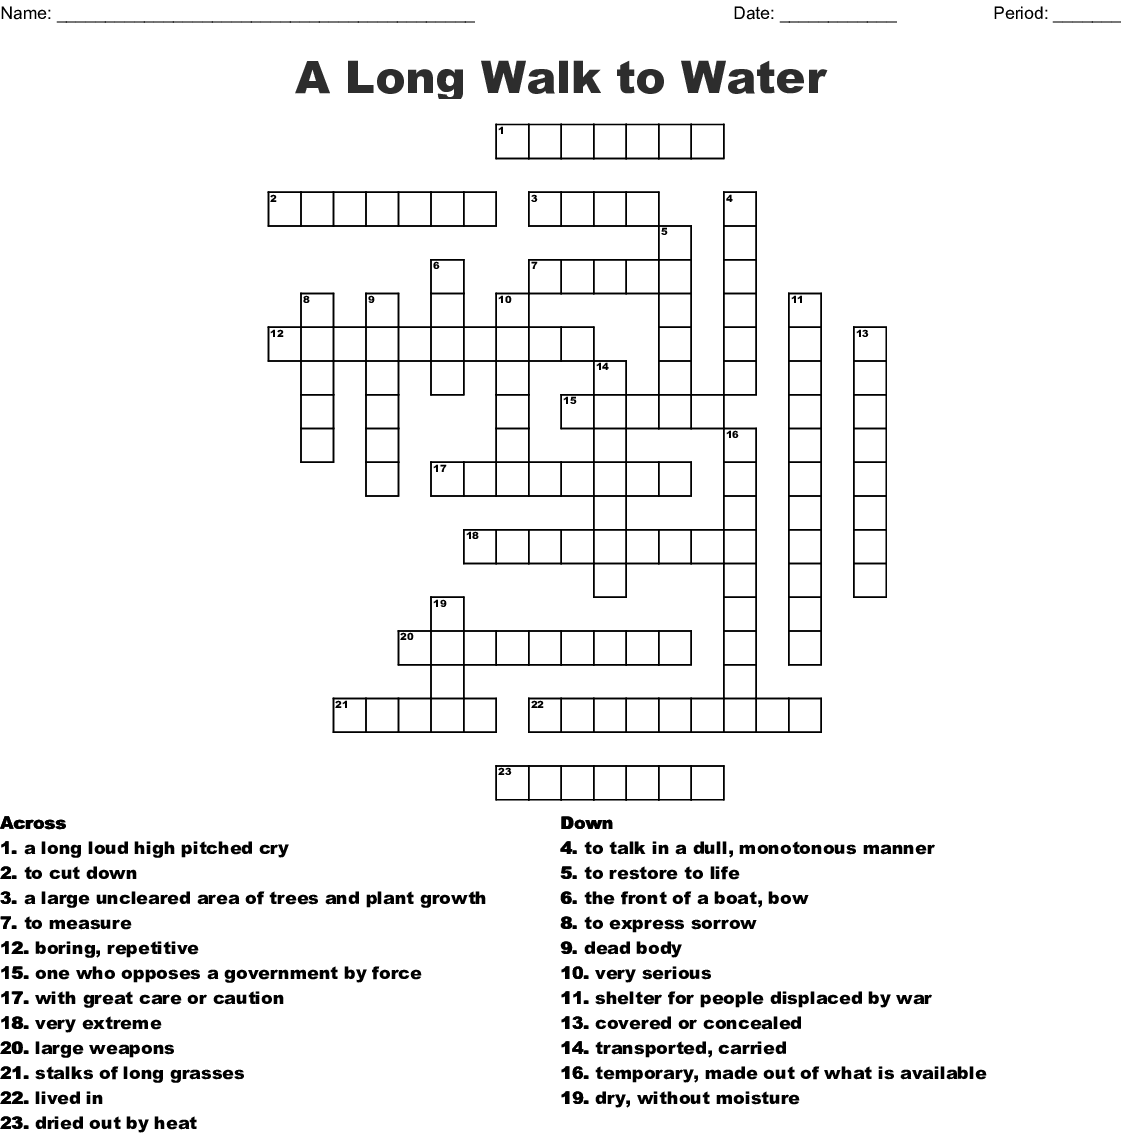 A Long Walk To Water Crossword